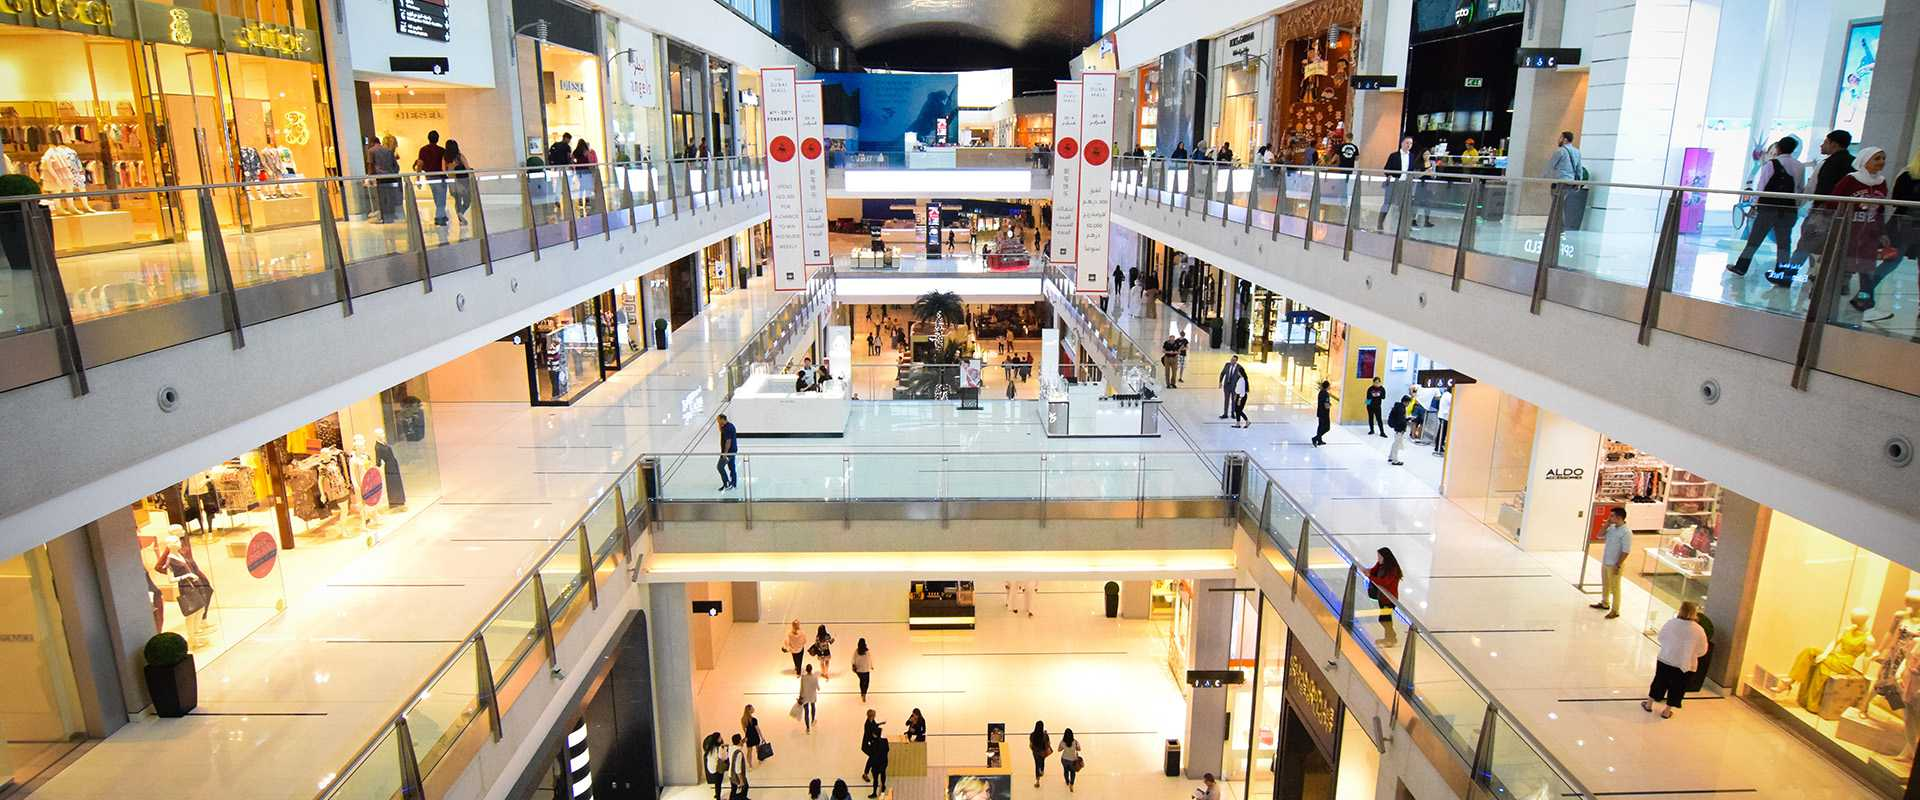 Commercial cleaning for retail outlets.